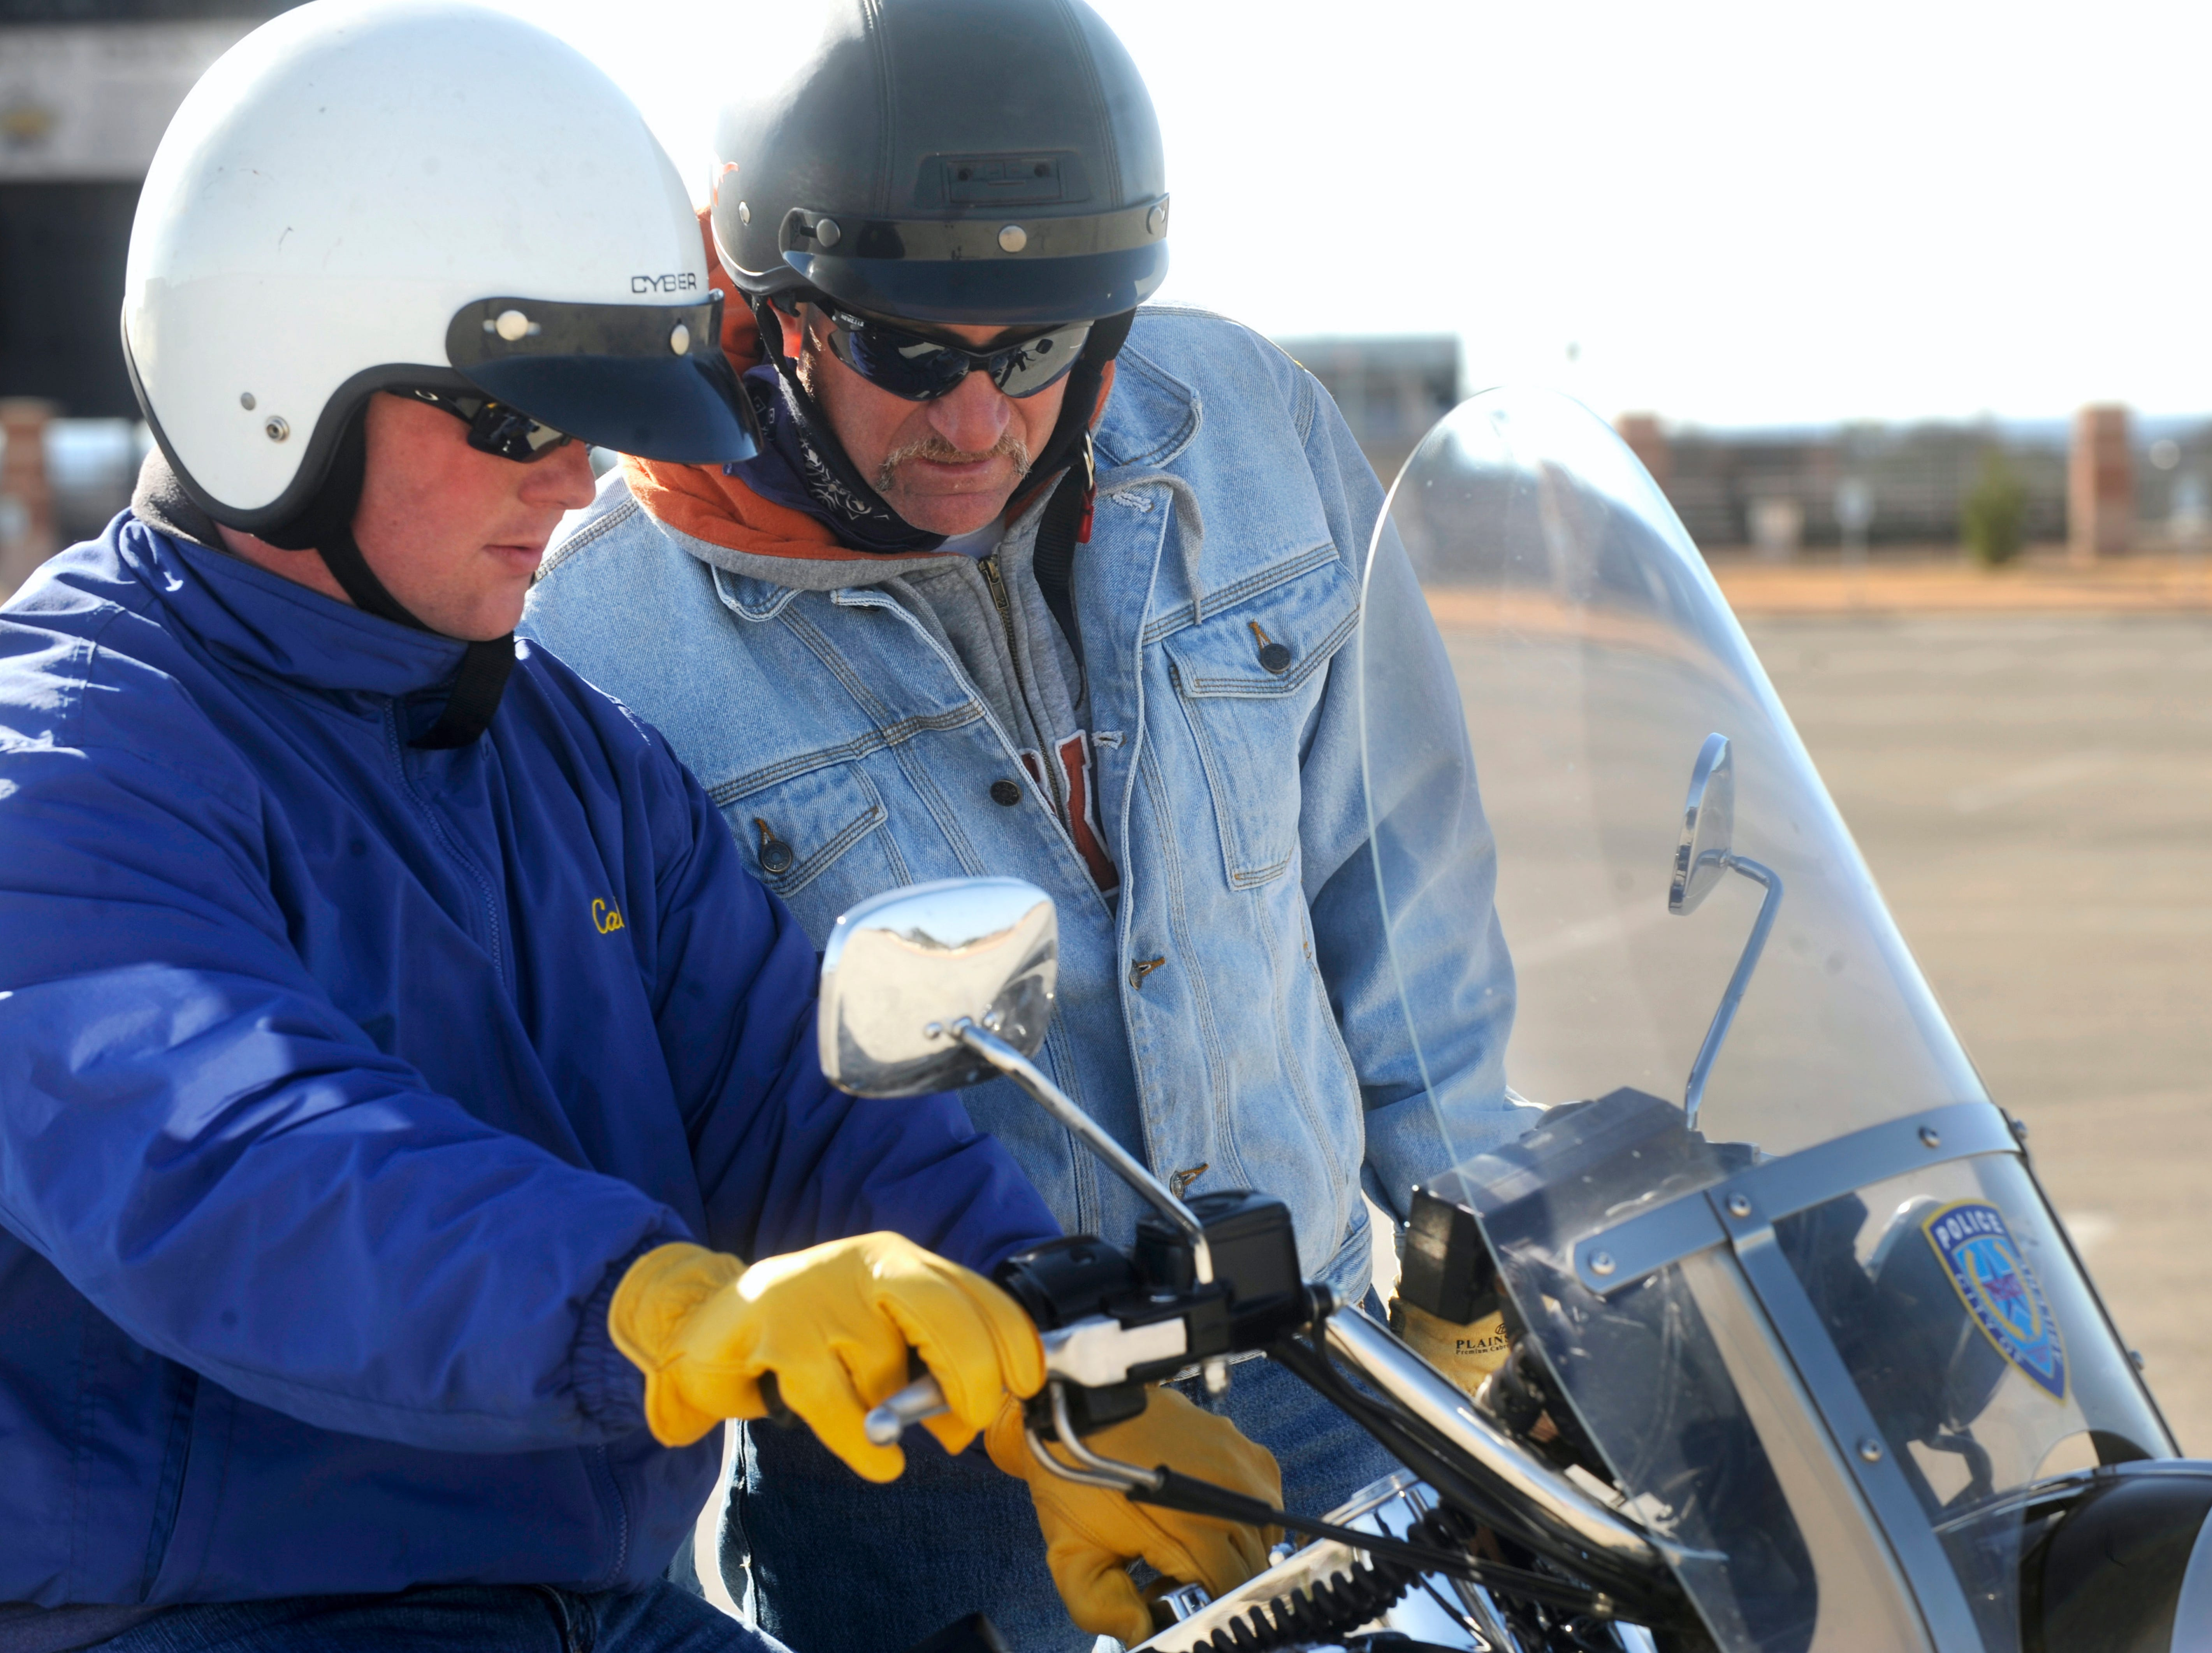 Rodney Holder, right, helps officer Tyson Kropp, new to the police motorcycle during training at the Shotwell Stadium parking lot Feb. 11, 2009.